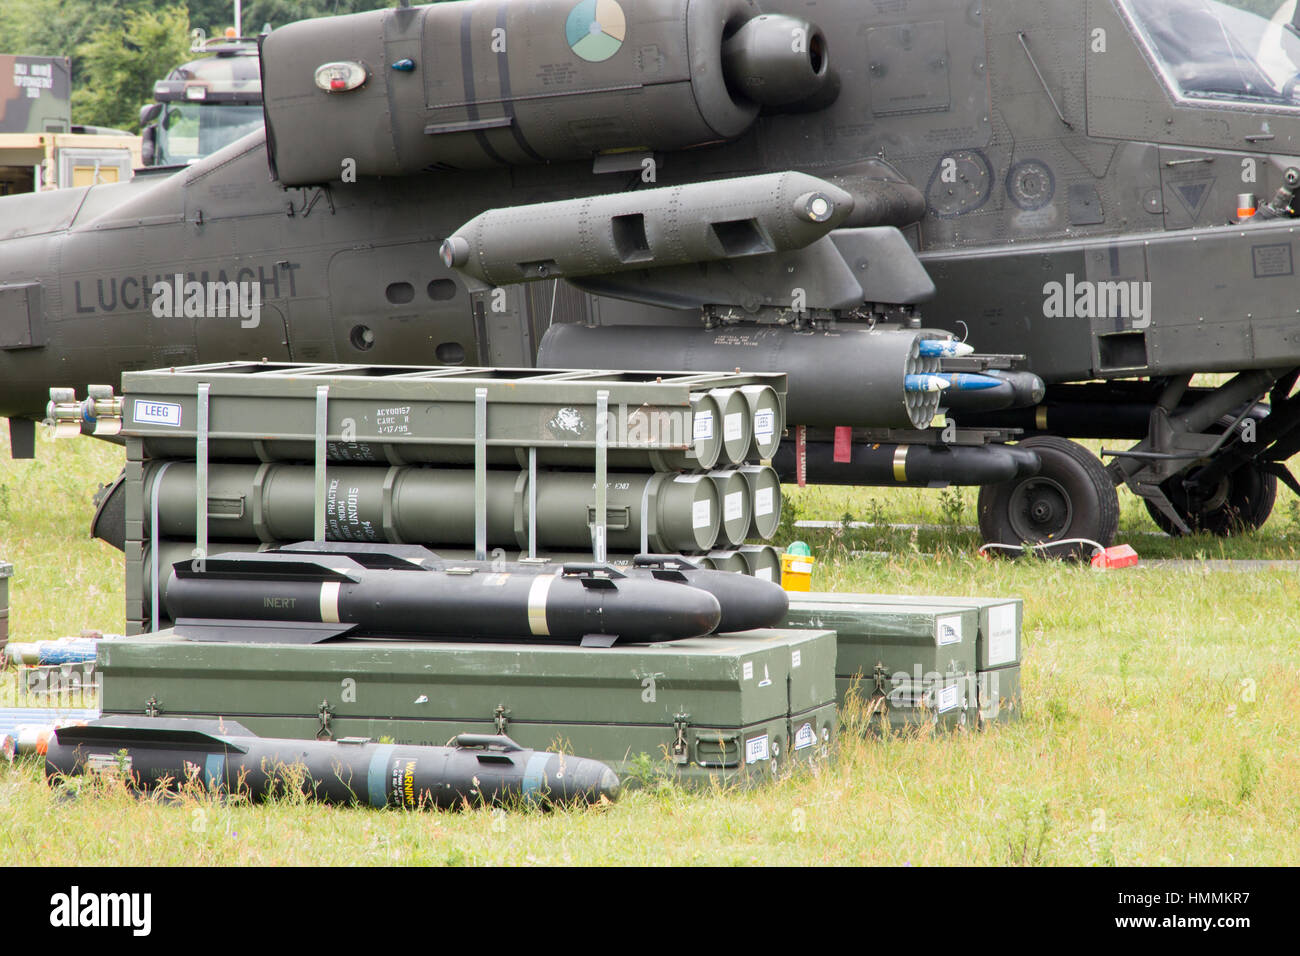 GILZE-RIJEN, NETHERLANDS - JUNE 20: Rockets and weaponry for the Apache attack helicopter on display at the Royal - Stock Image